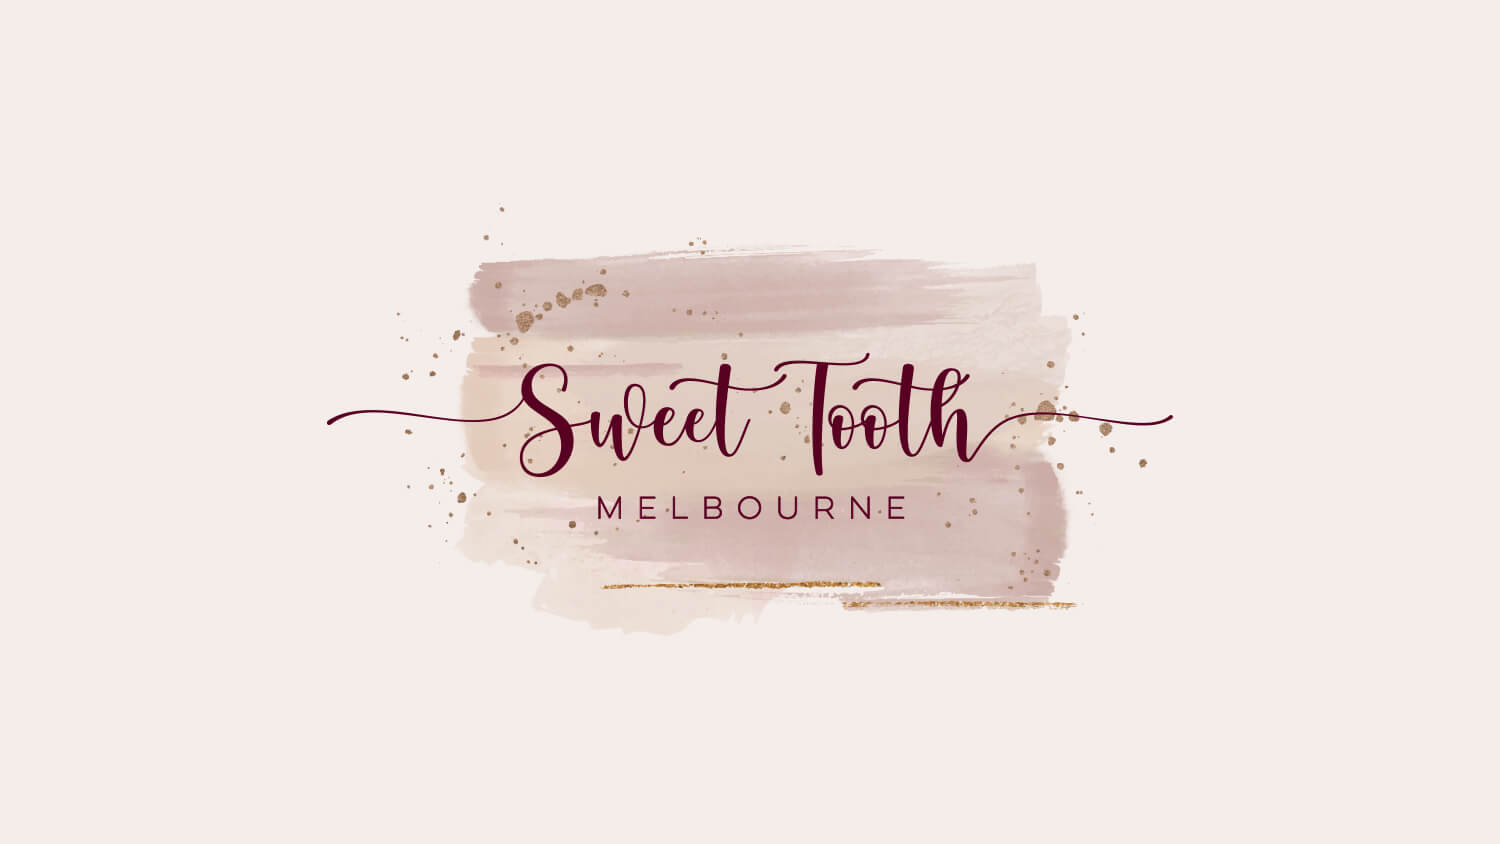 Business branding for Sweet Tooth, Melbourne Vic